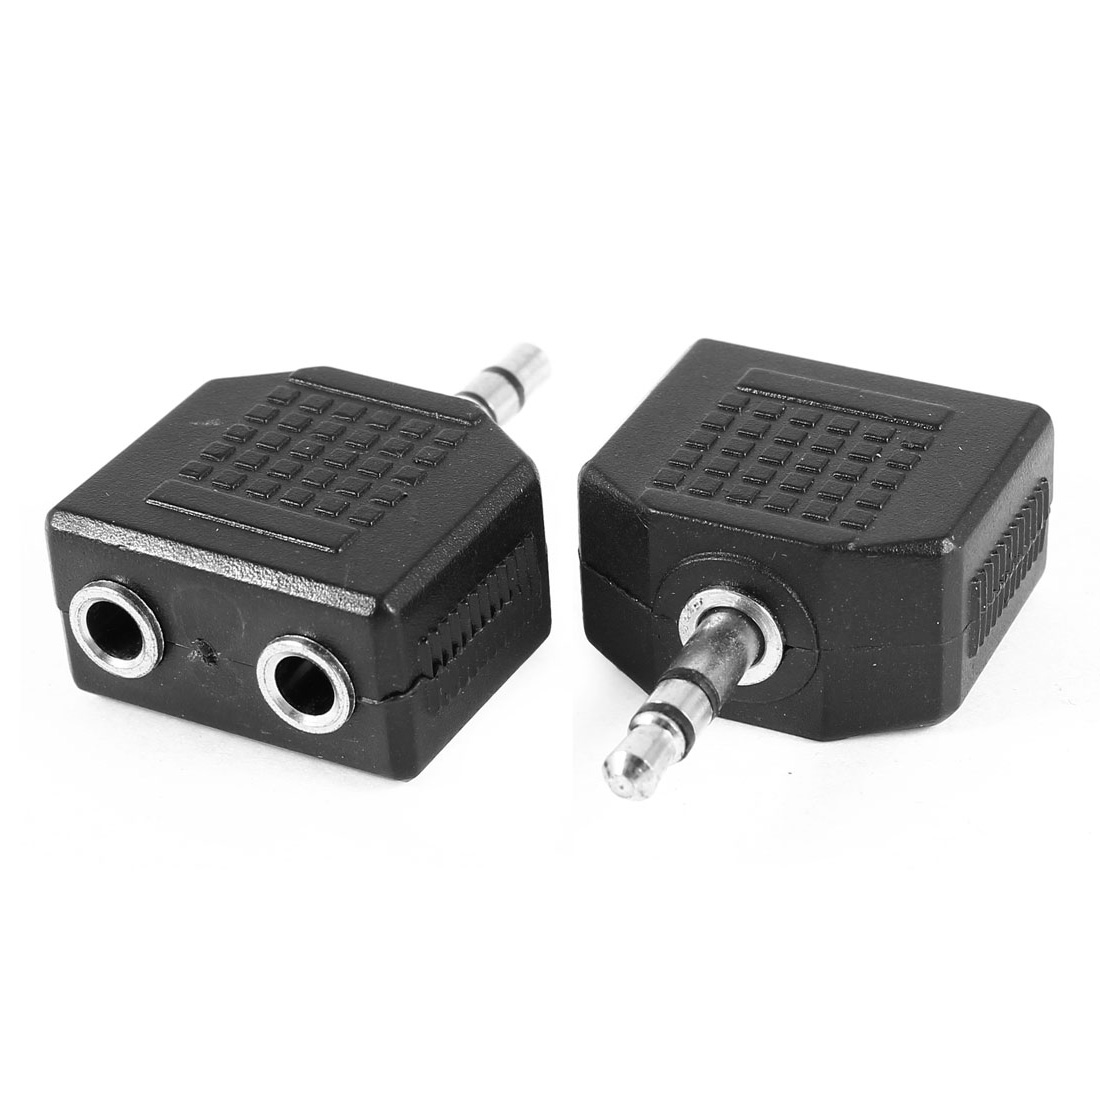 Dual 3.5mm Female to 3.5mm Male Audio Convertor Adapter Connector 2 Pieces - image 1 of 1